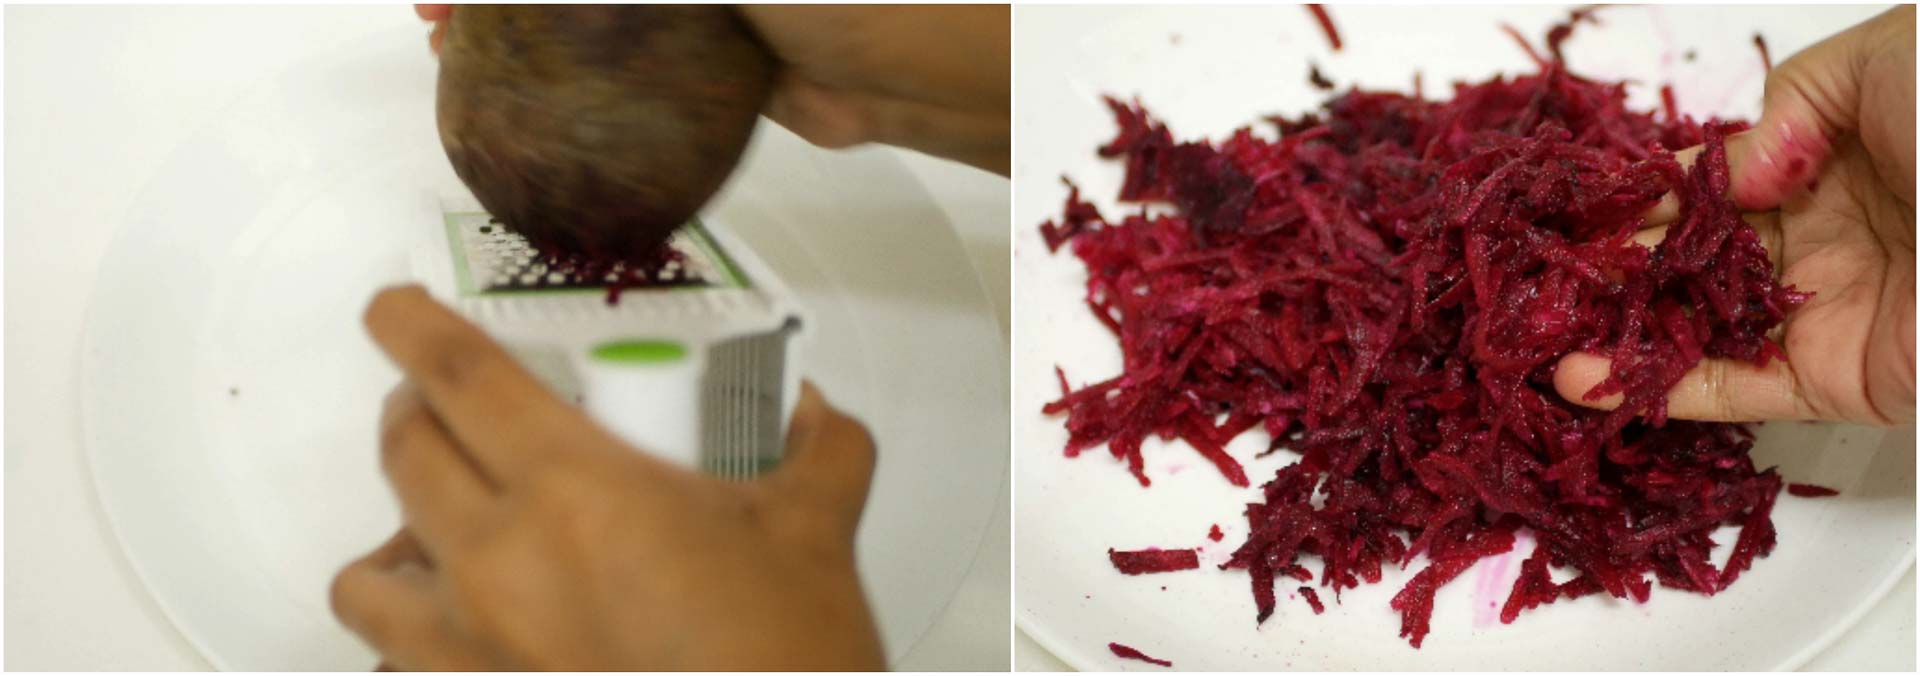 beetroot-thogayal-beetroot-thuvaiyal-recipe-1